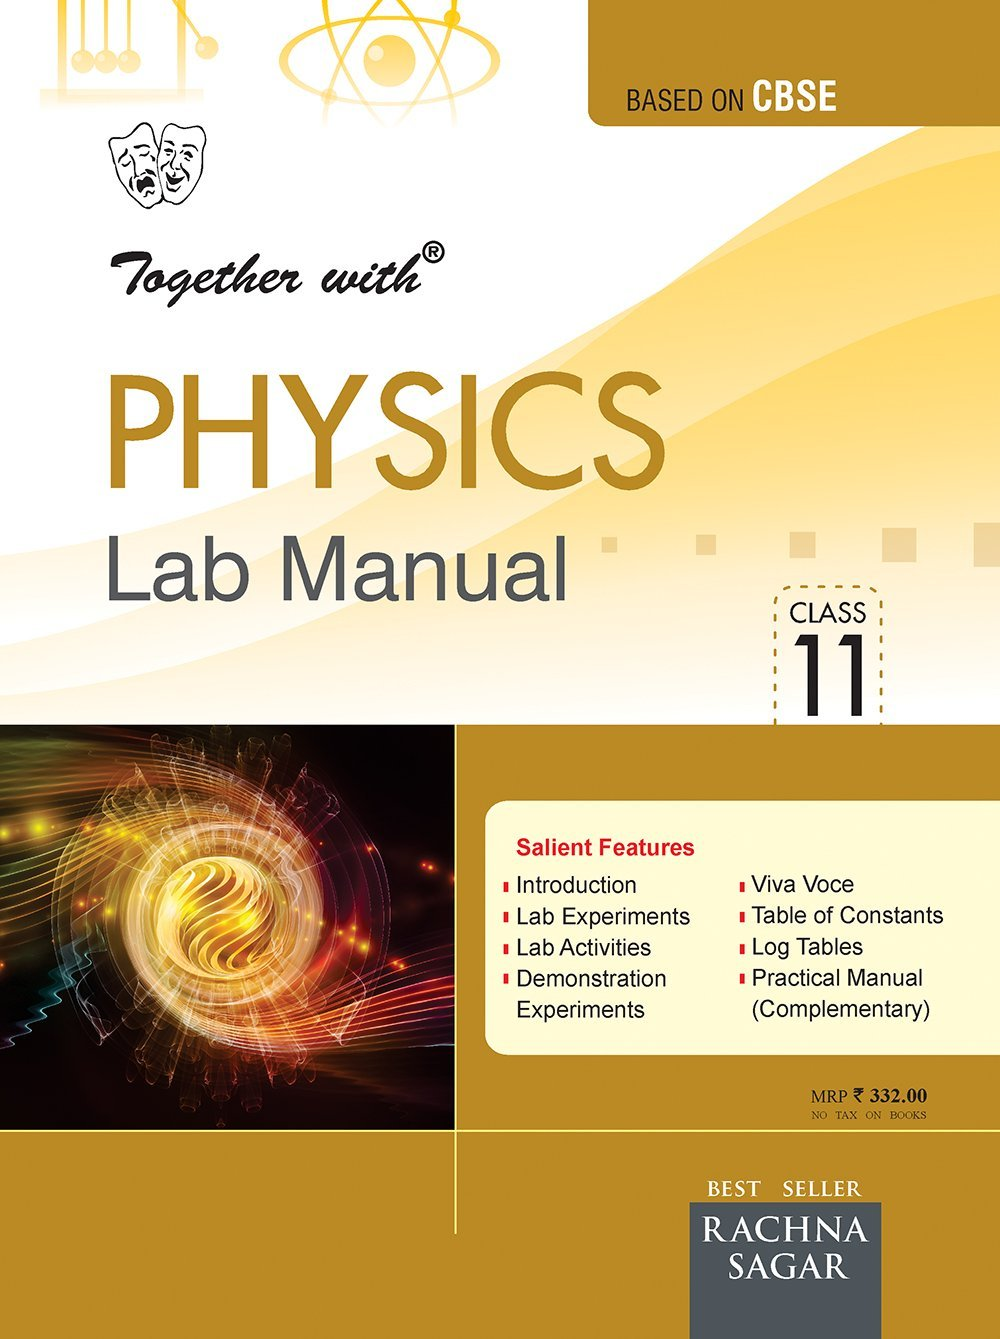 Amazon.in: Buy Together With Physics Lab Manual Class 11 Book Online at Low